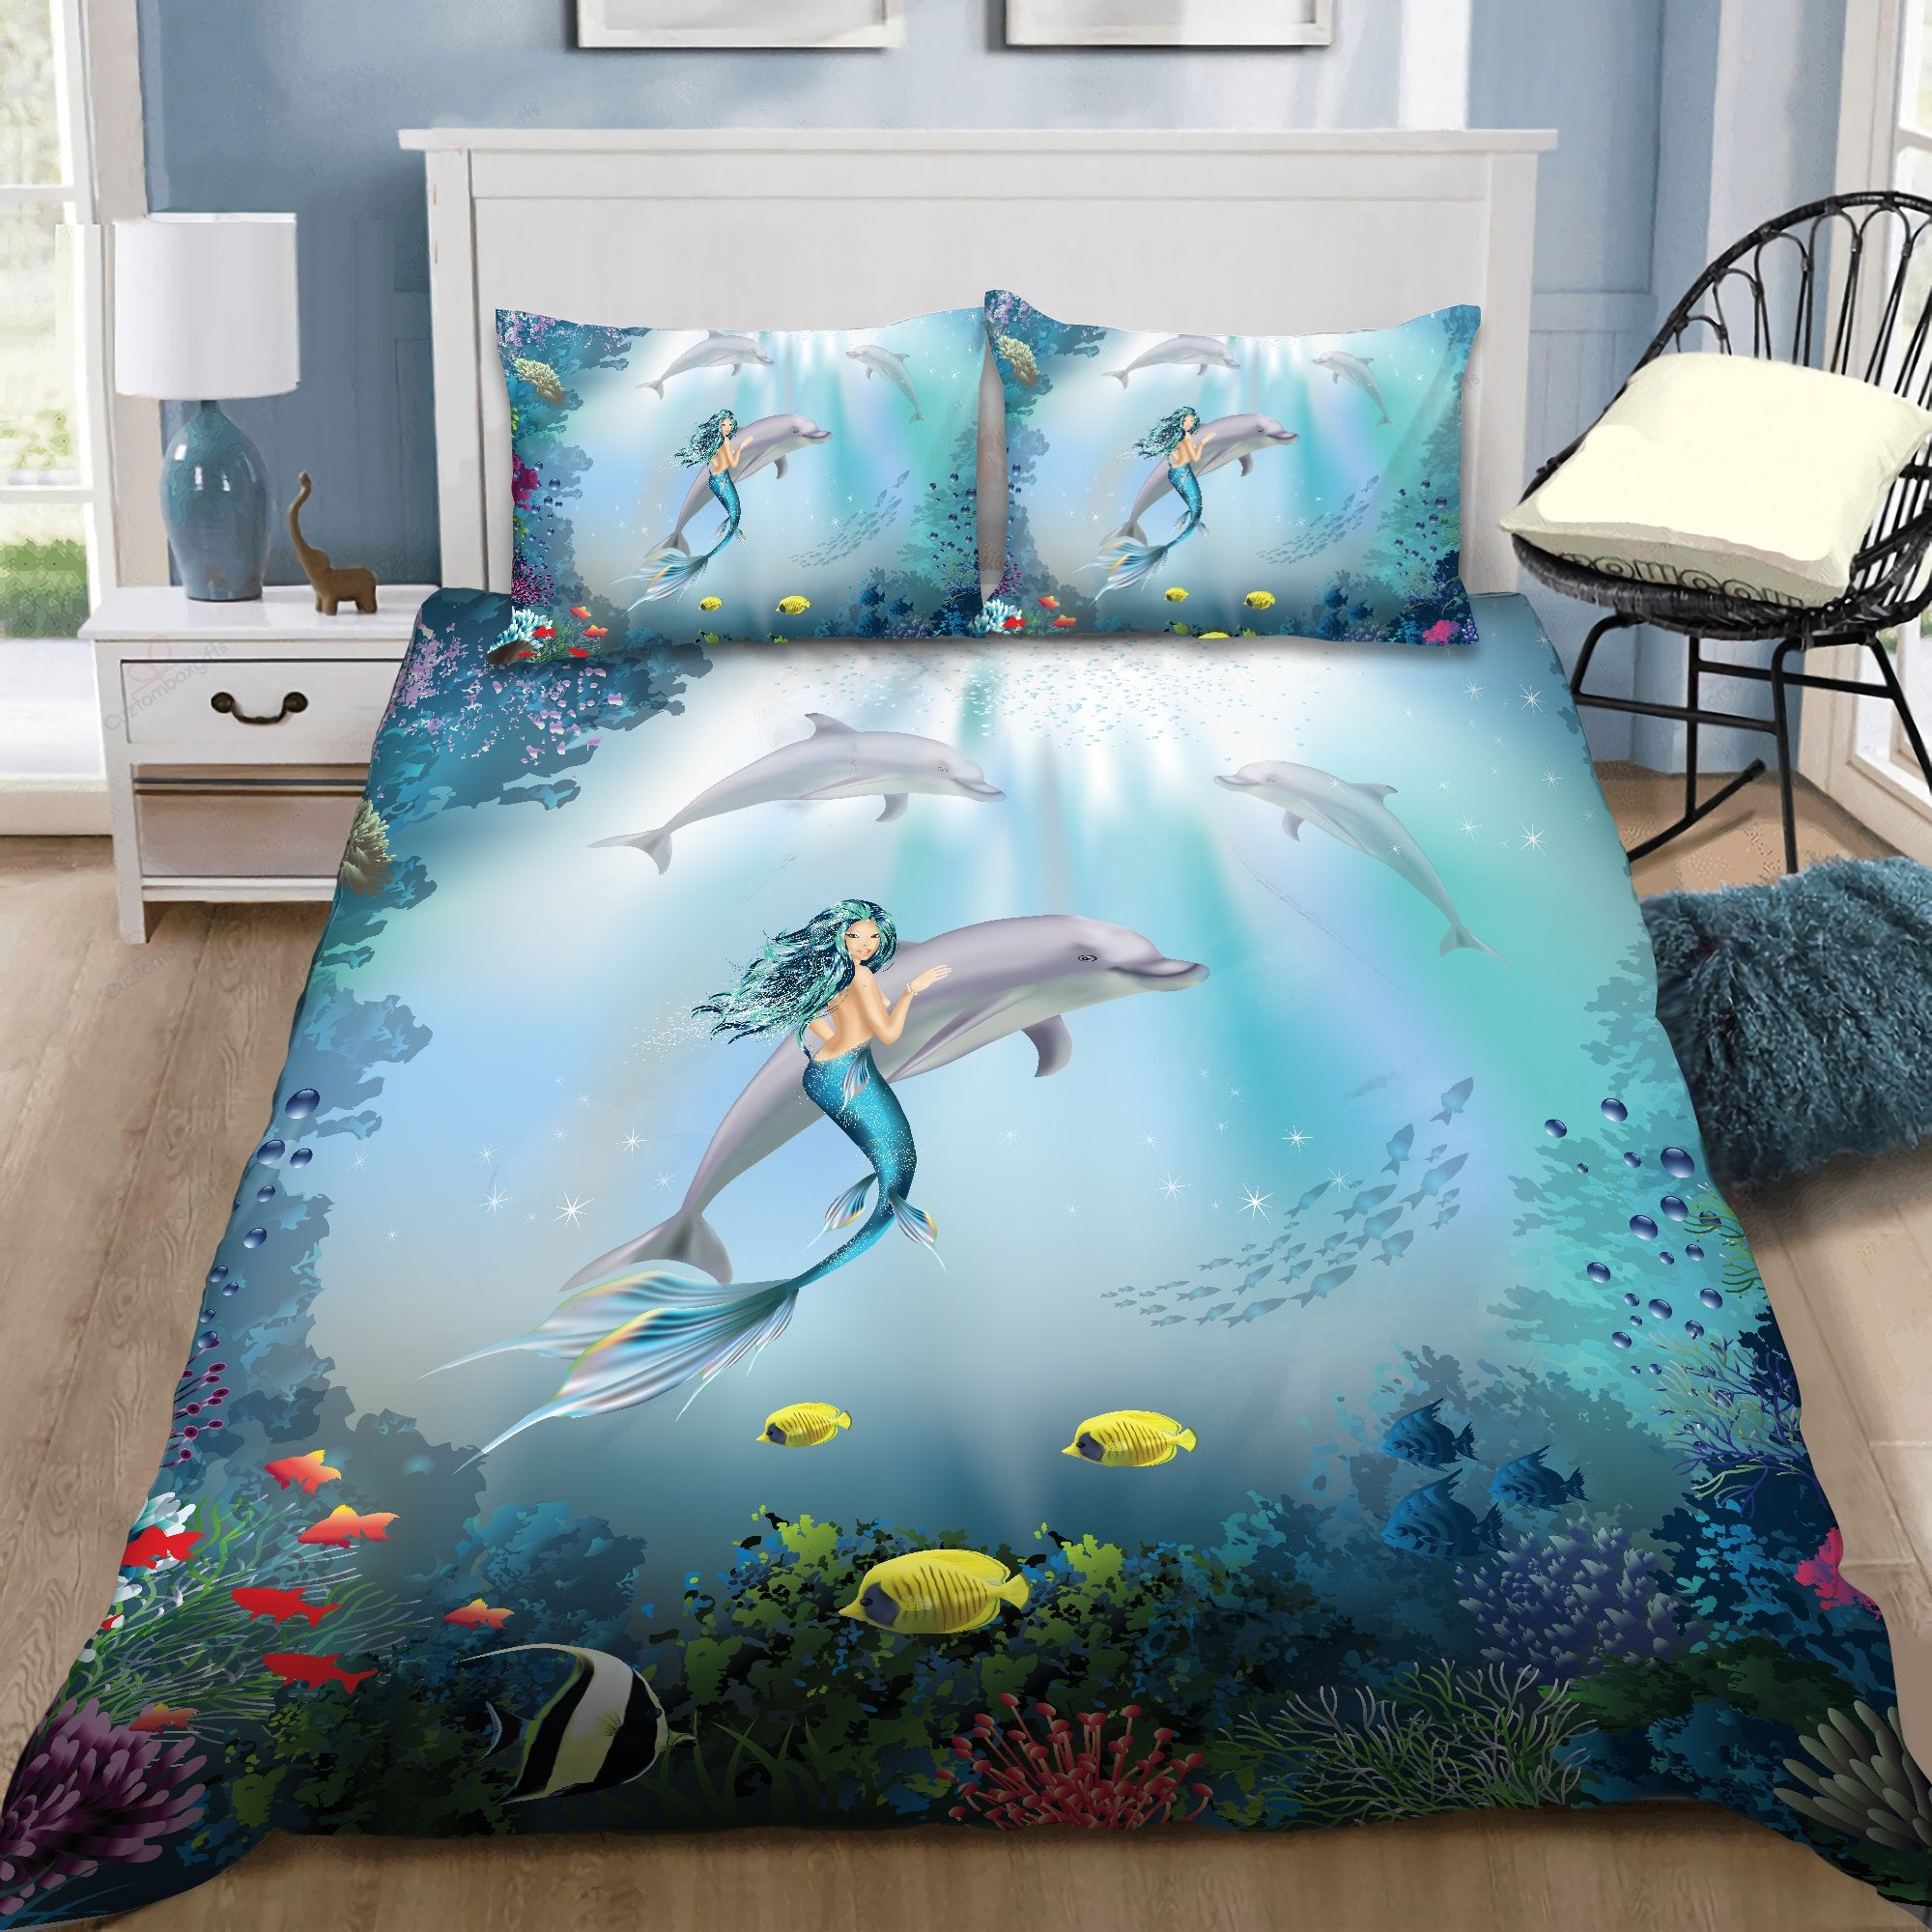 Be A Mermaid And Make Waves Bedding Set by SUN DQB07132002-Quilt-SUN-King-Vibe Cosy™